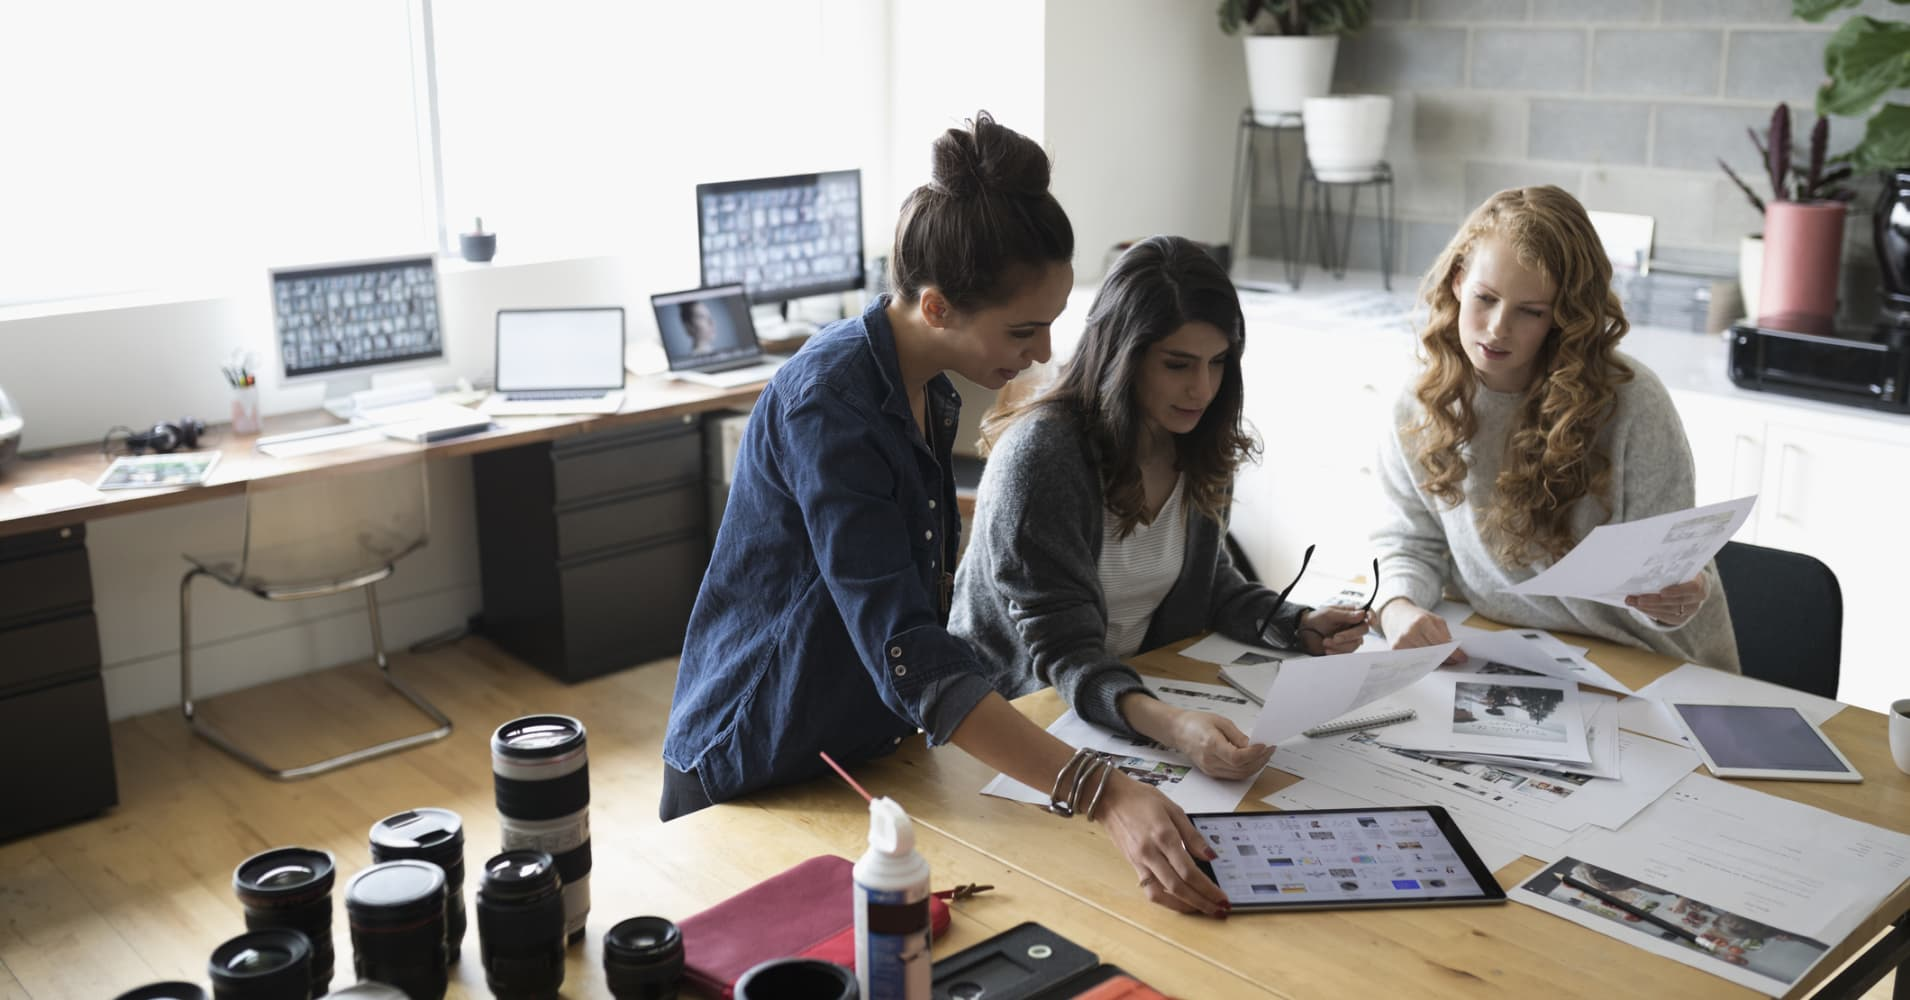 Female photo editors with digital tablet reviewing photo proofs in office